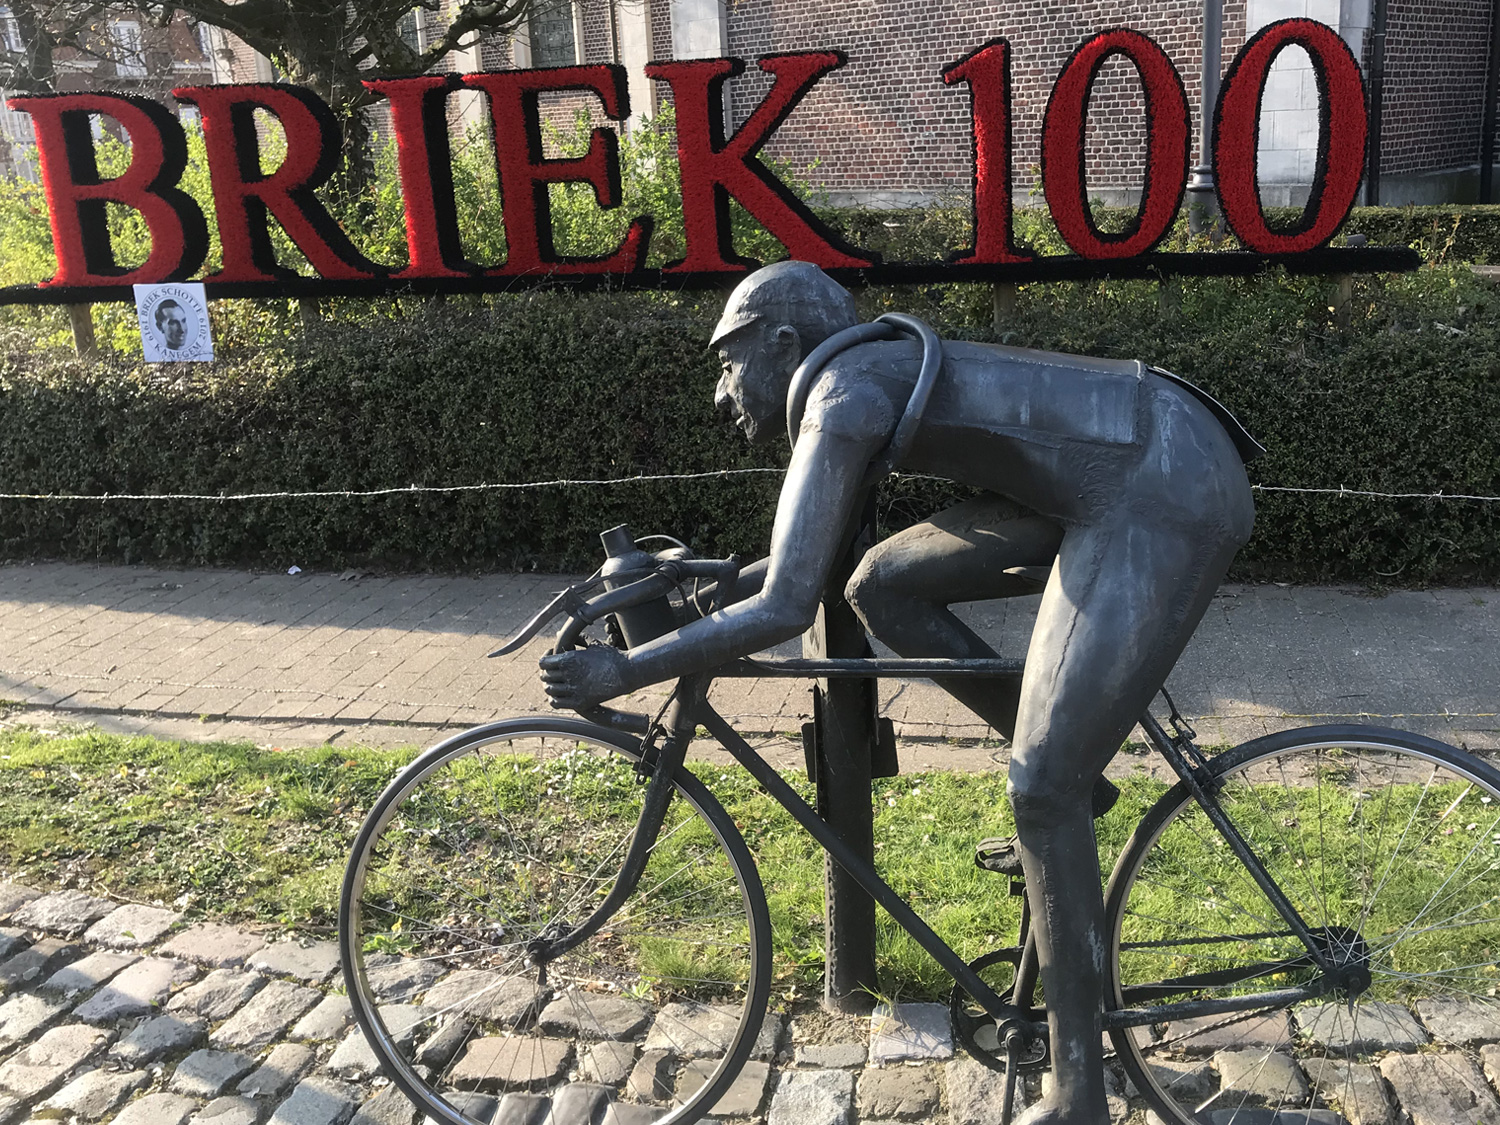 Briek-Schotte-